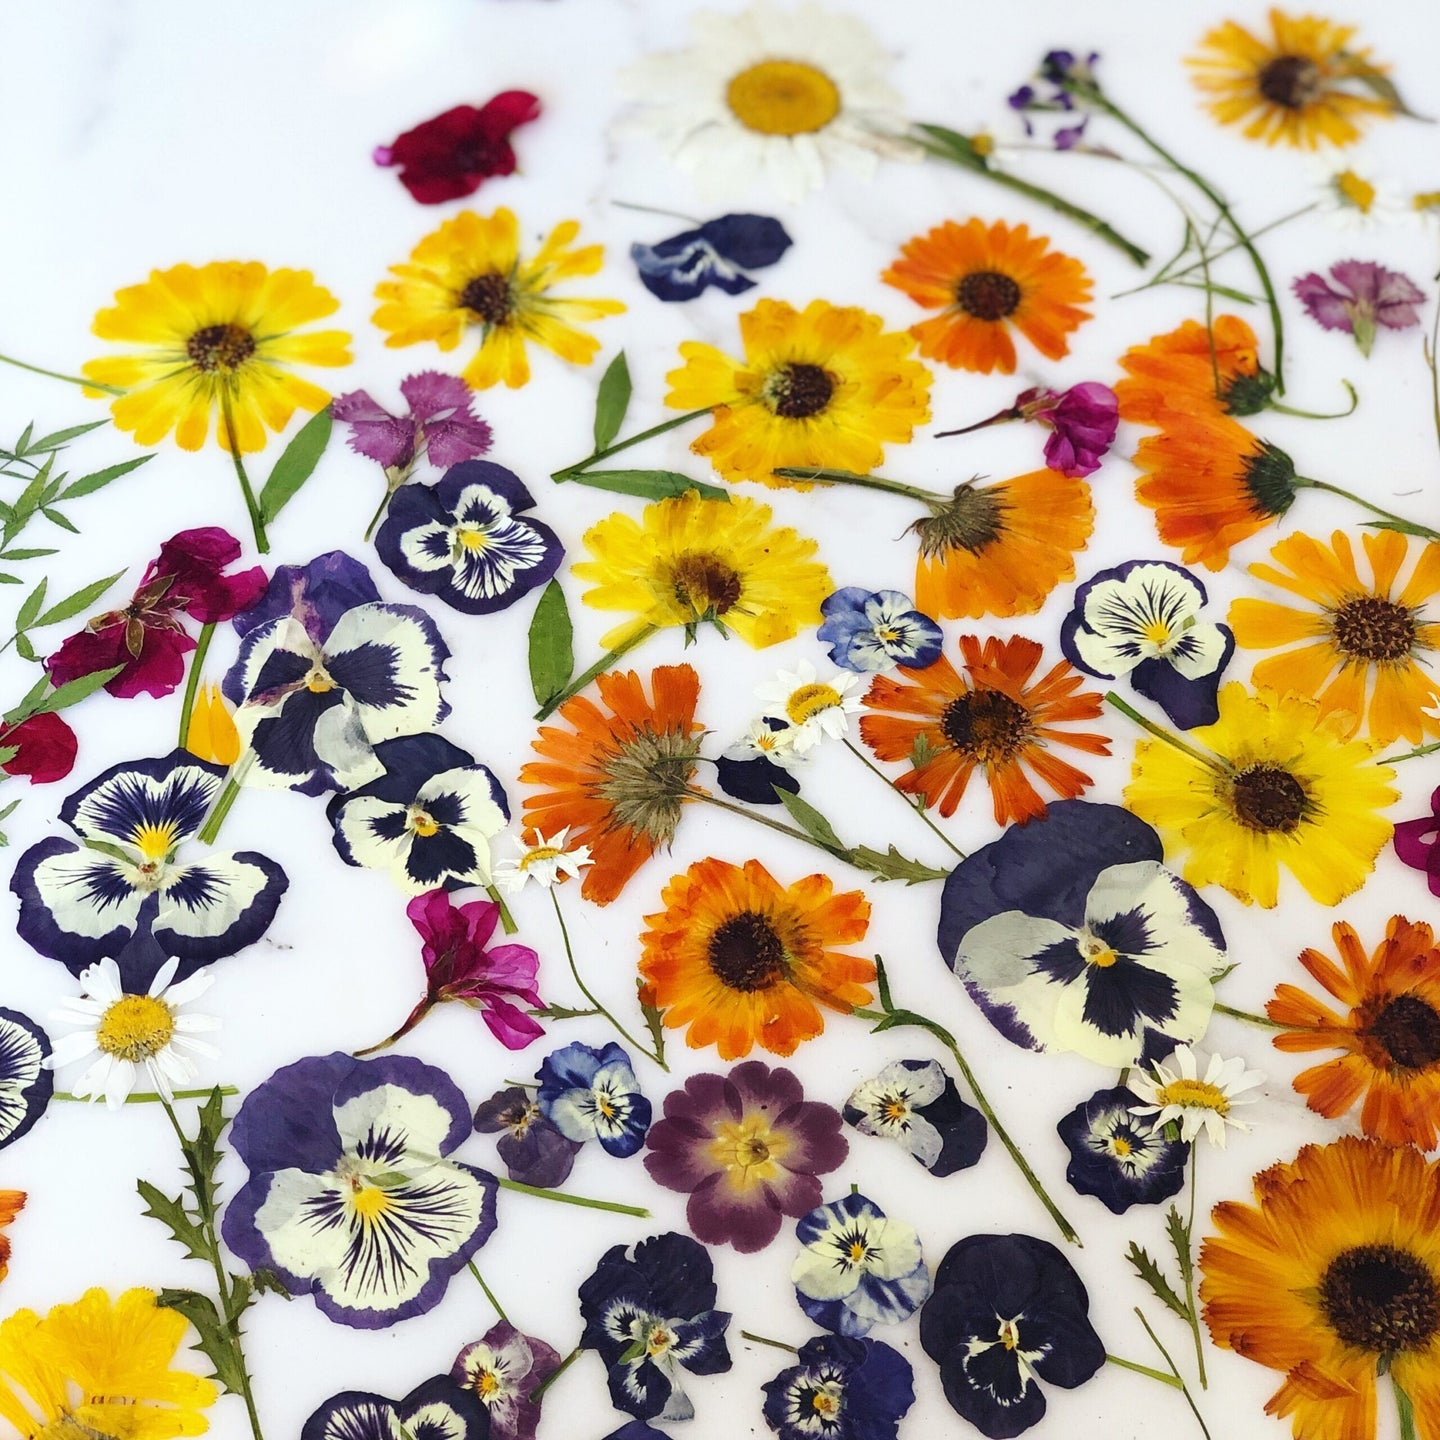 Pressed and dried flowers in purple, orange, and yellow